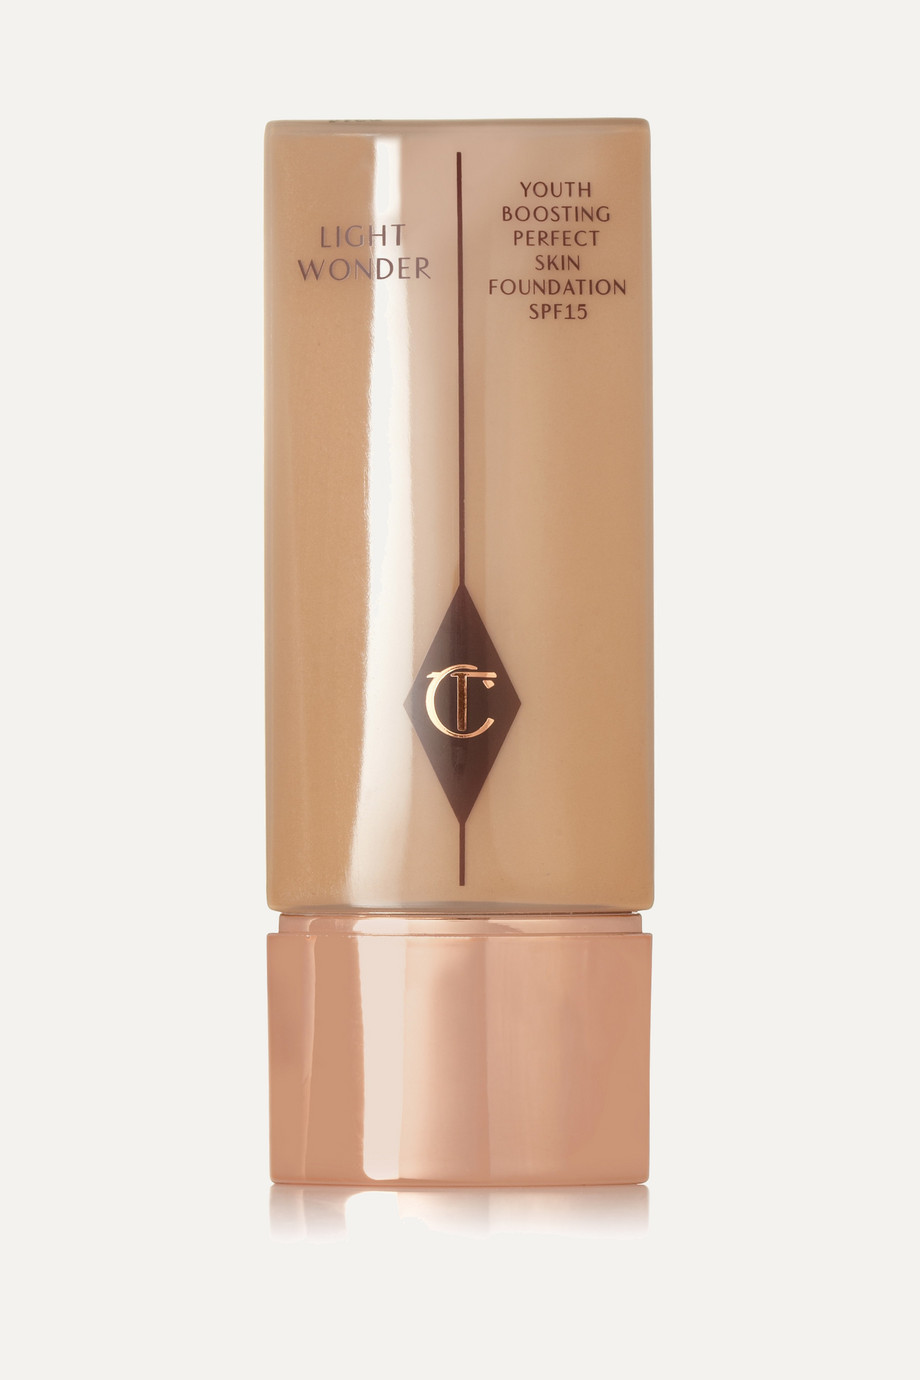 Charlotte Tilbury Light Wonder Youth-Boosting Foundation LSF 15 – 7 Medium, 40 ml – Foundation